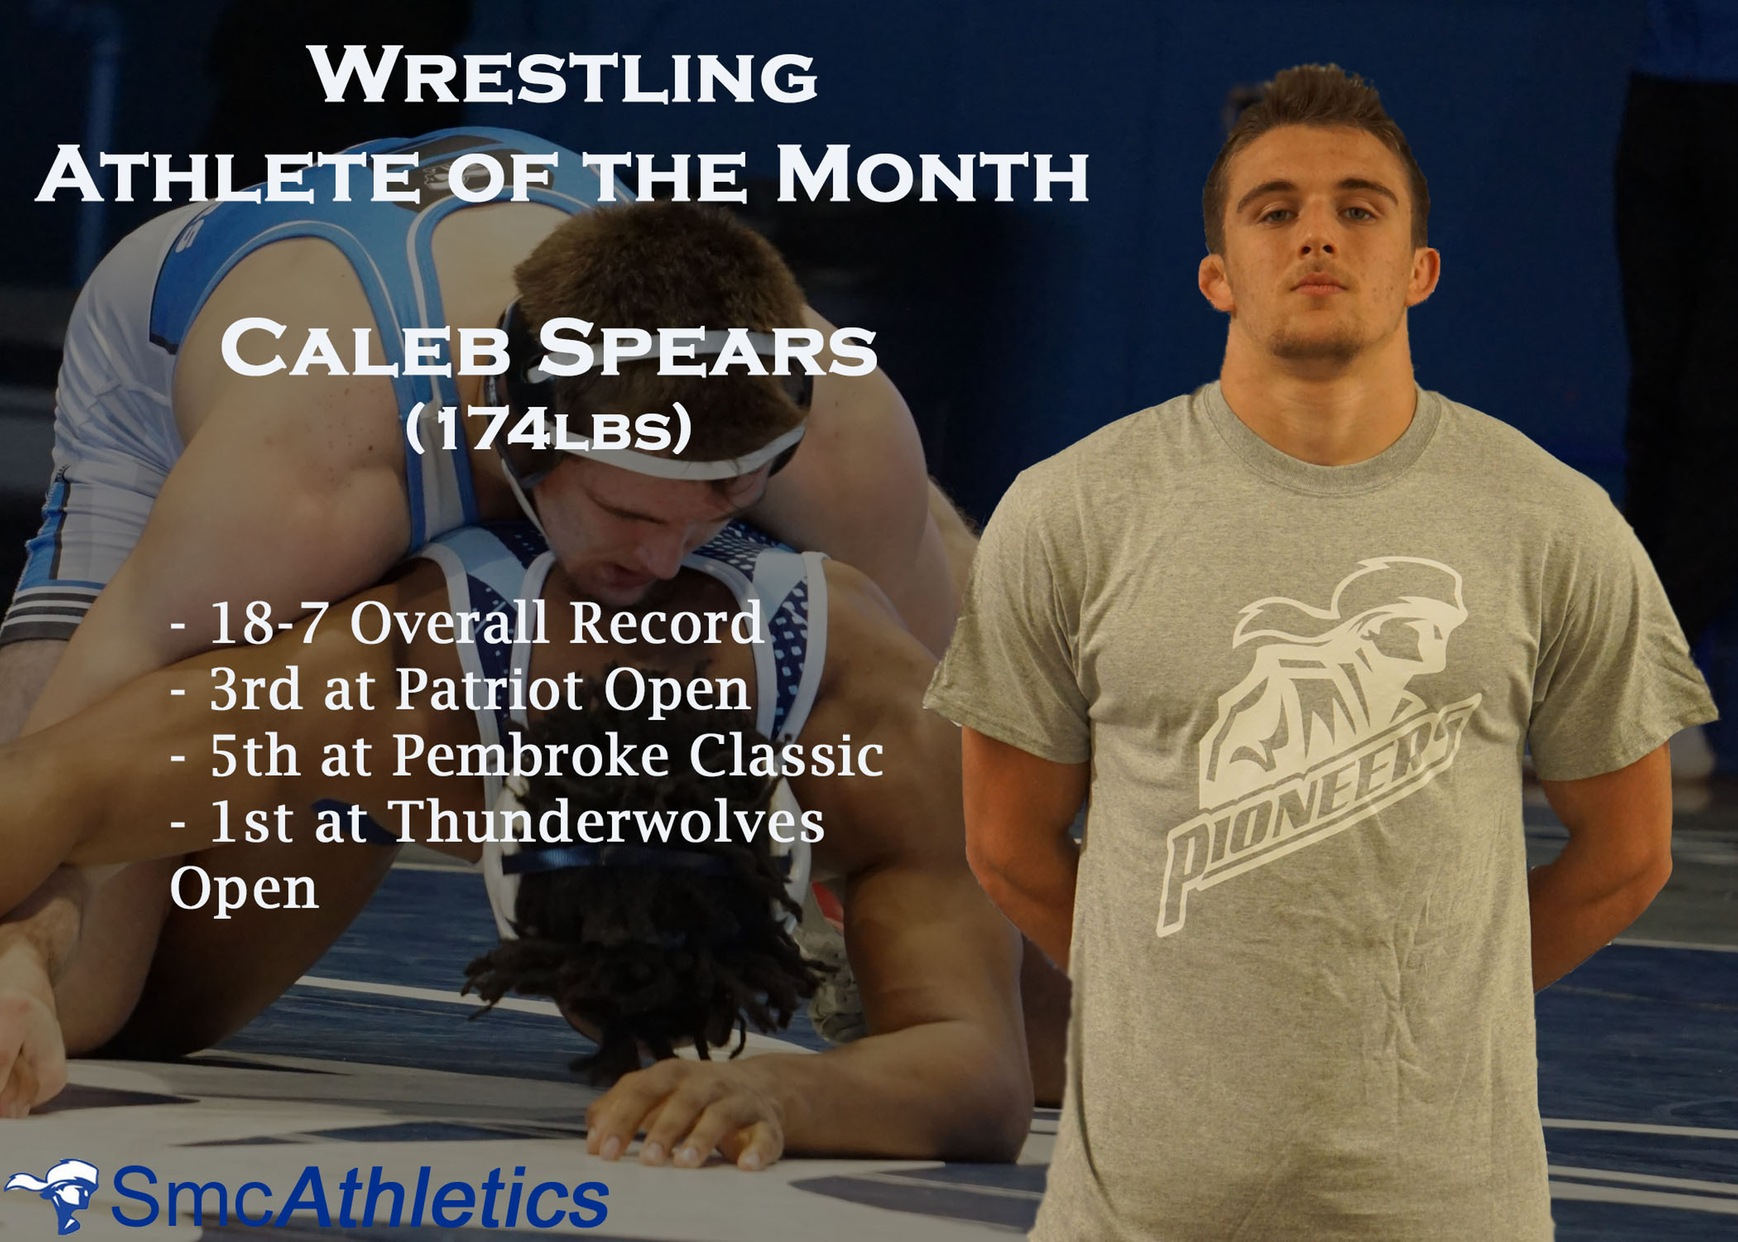 Wrestling Athlete of the Month